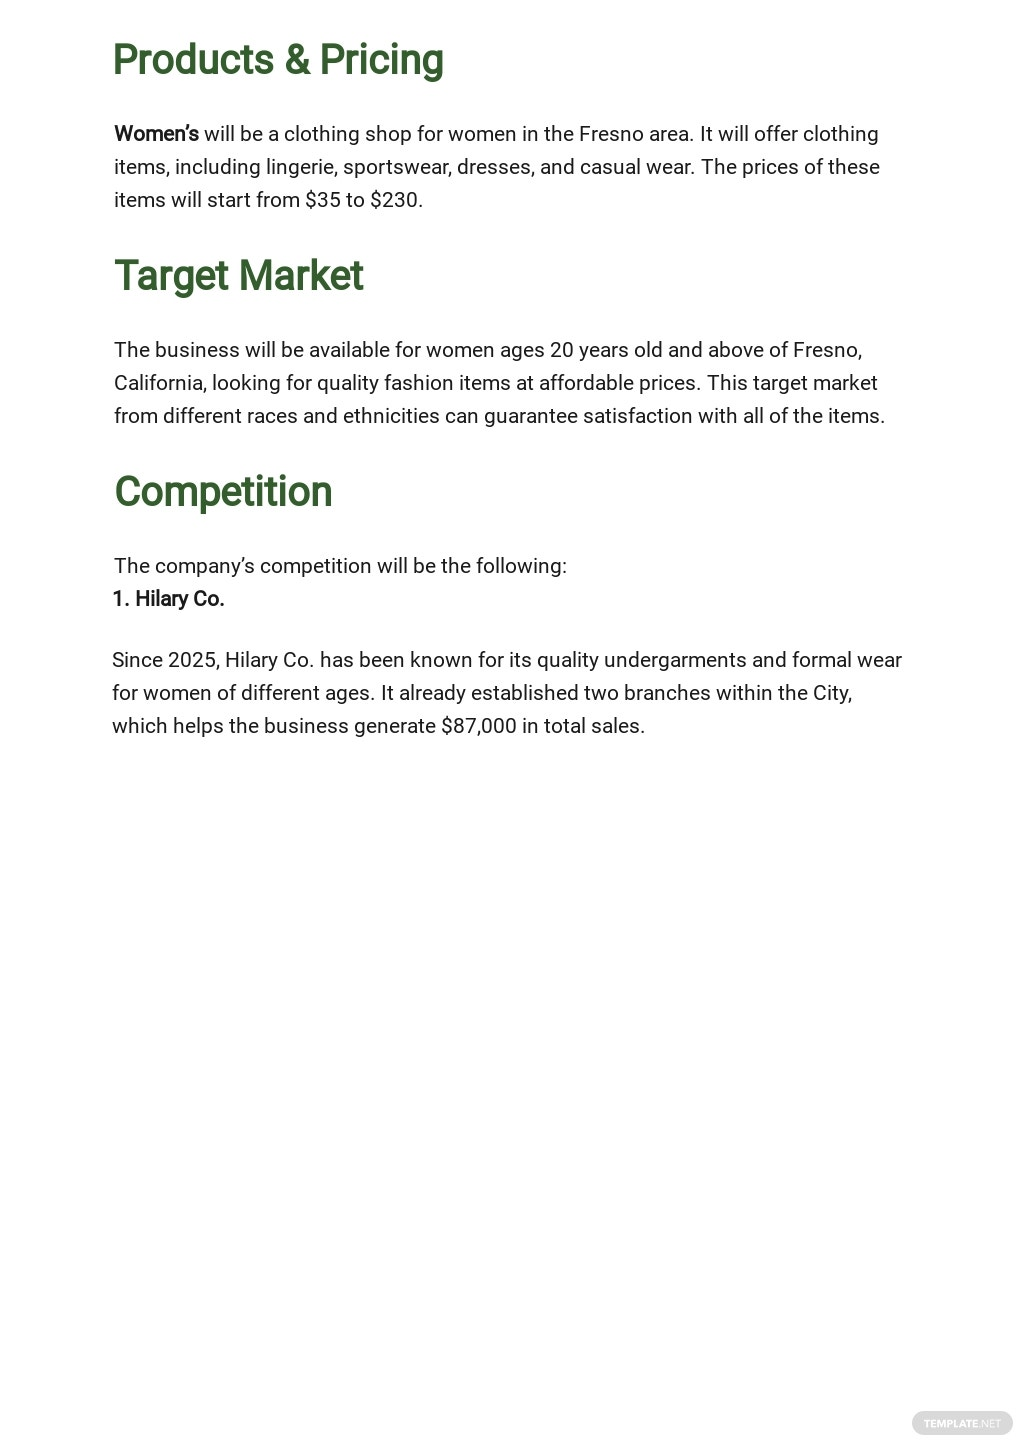 Clothing Business Plan Template 2.jpe